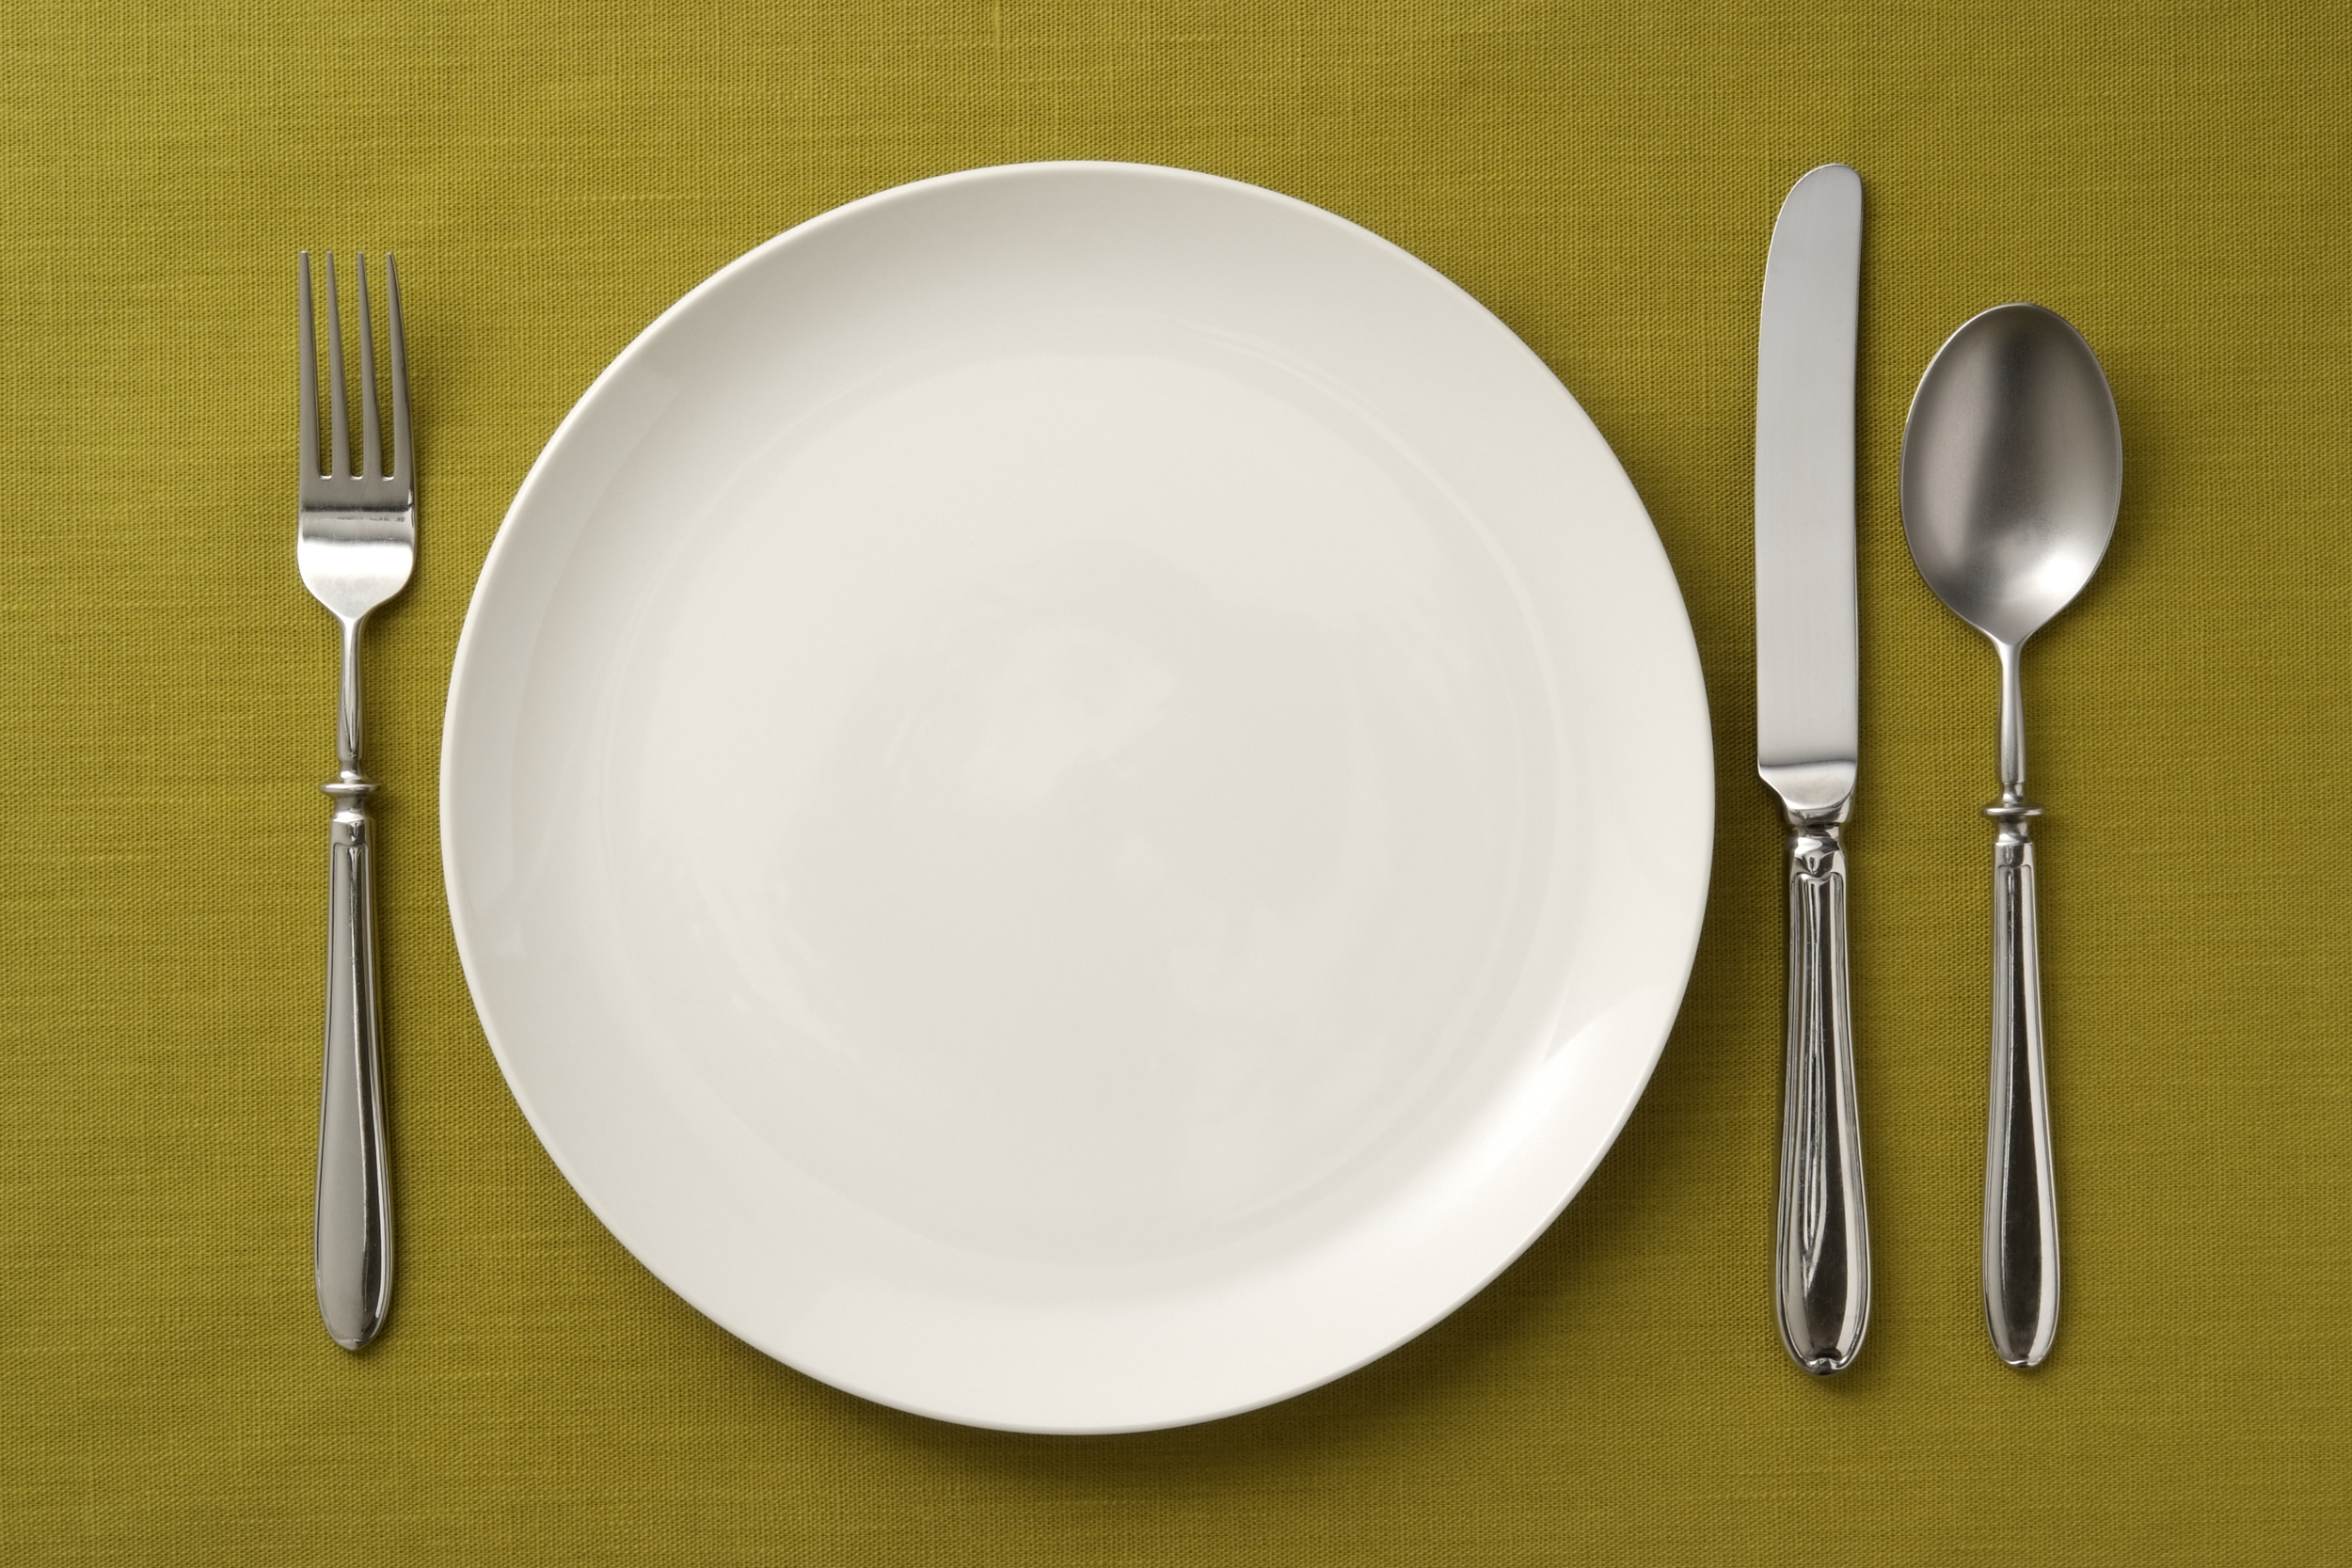 Did you use an 8 INCH plate at dinner today? & Did you use an 8 INCH plate at dinner today? u2014 inDeed Wellness